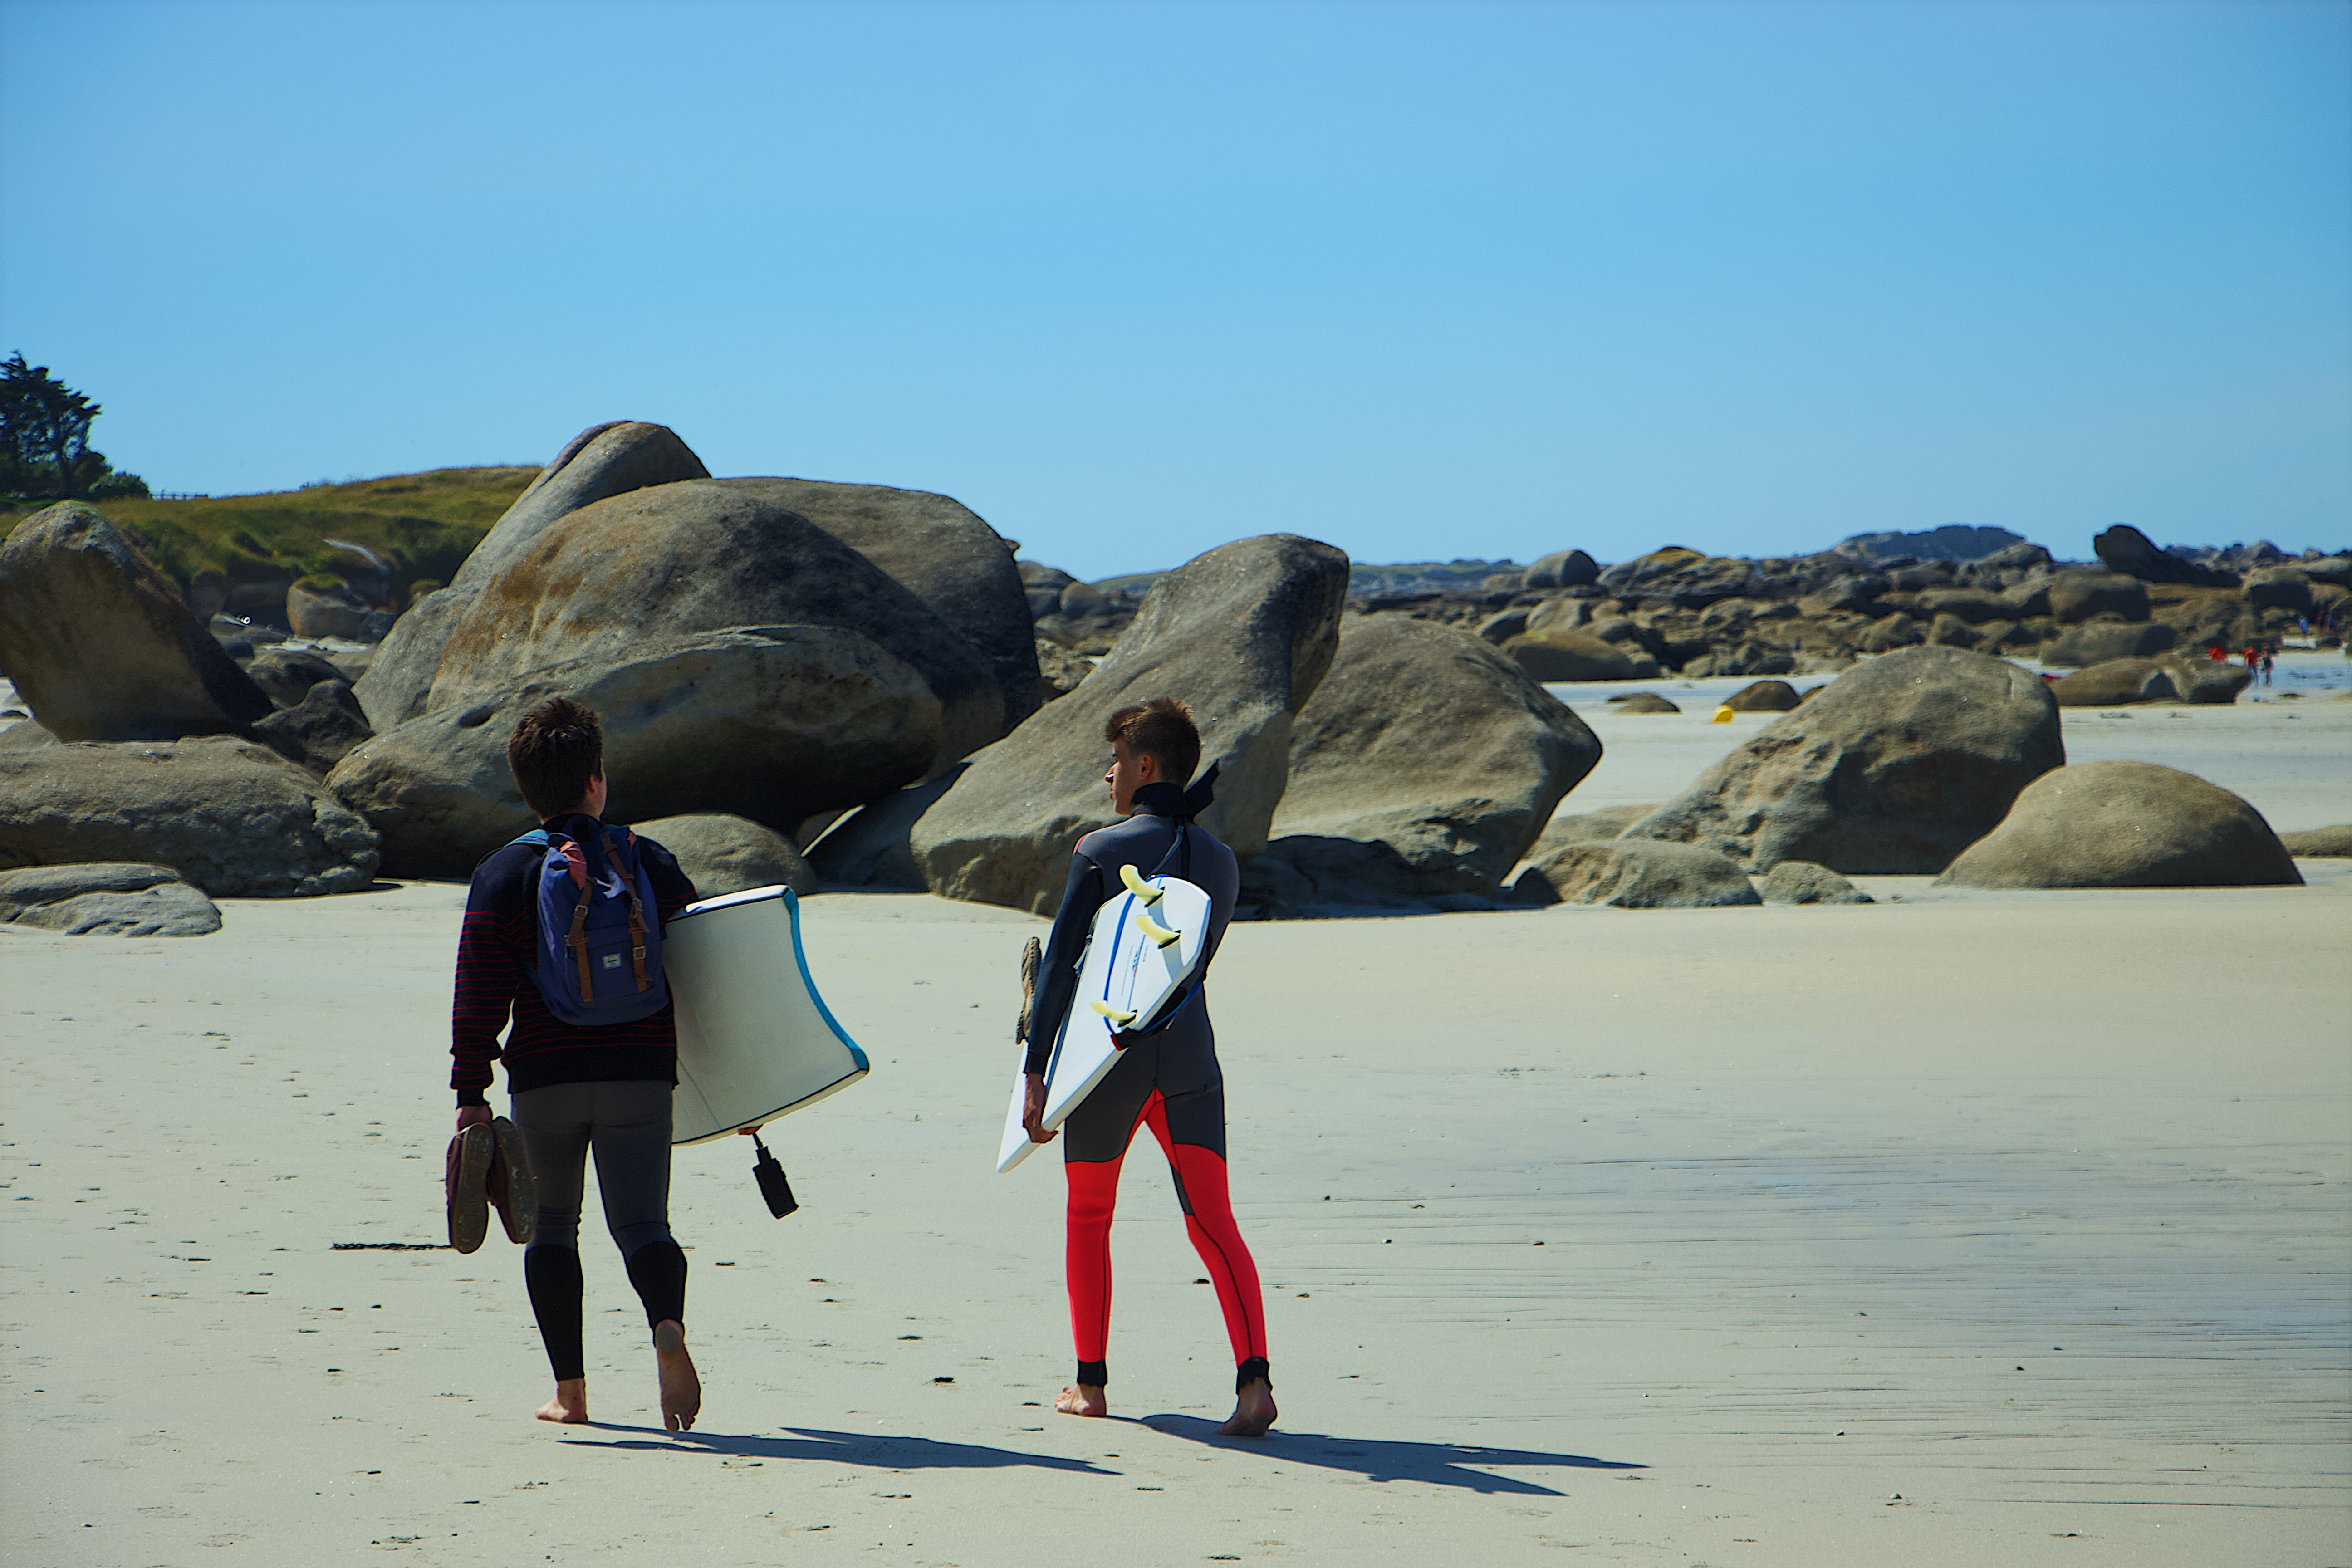 two person with surfboards walking on seashore